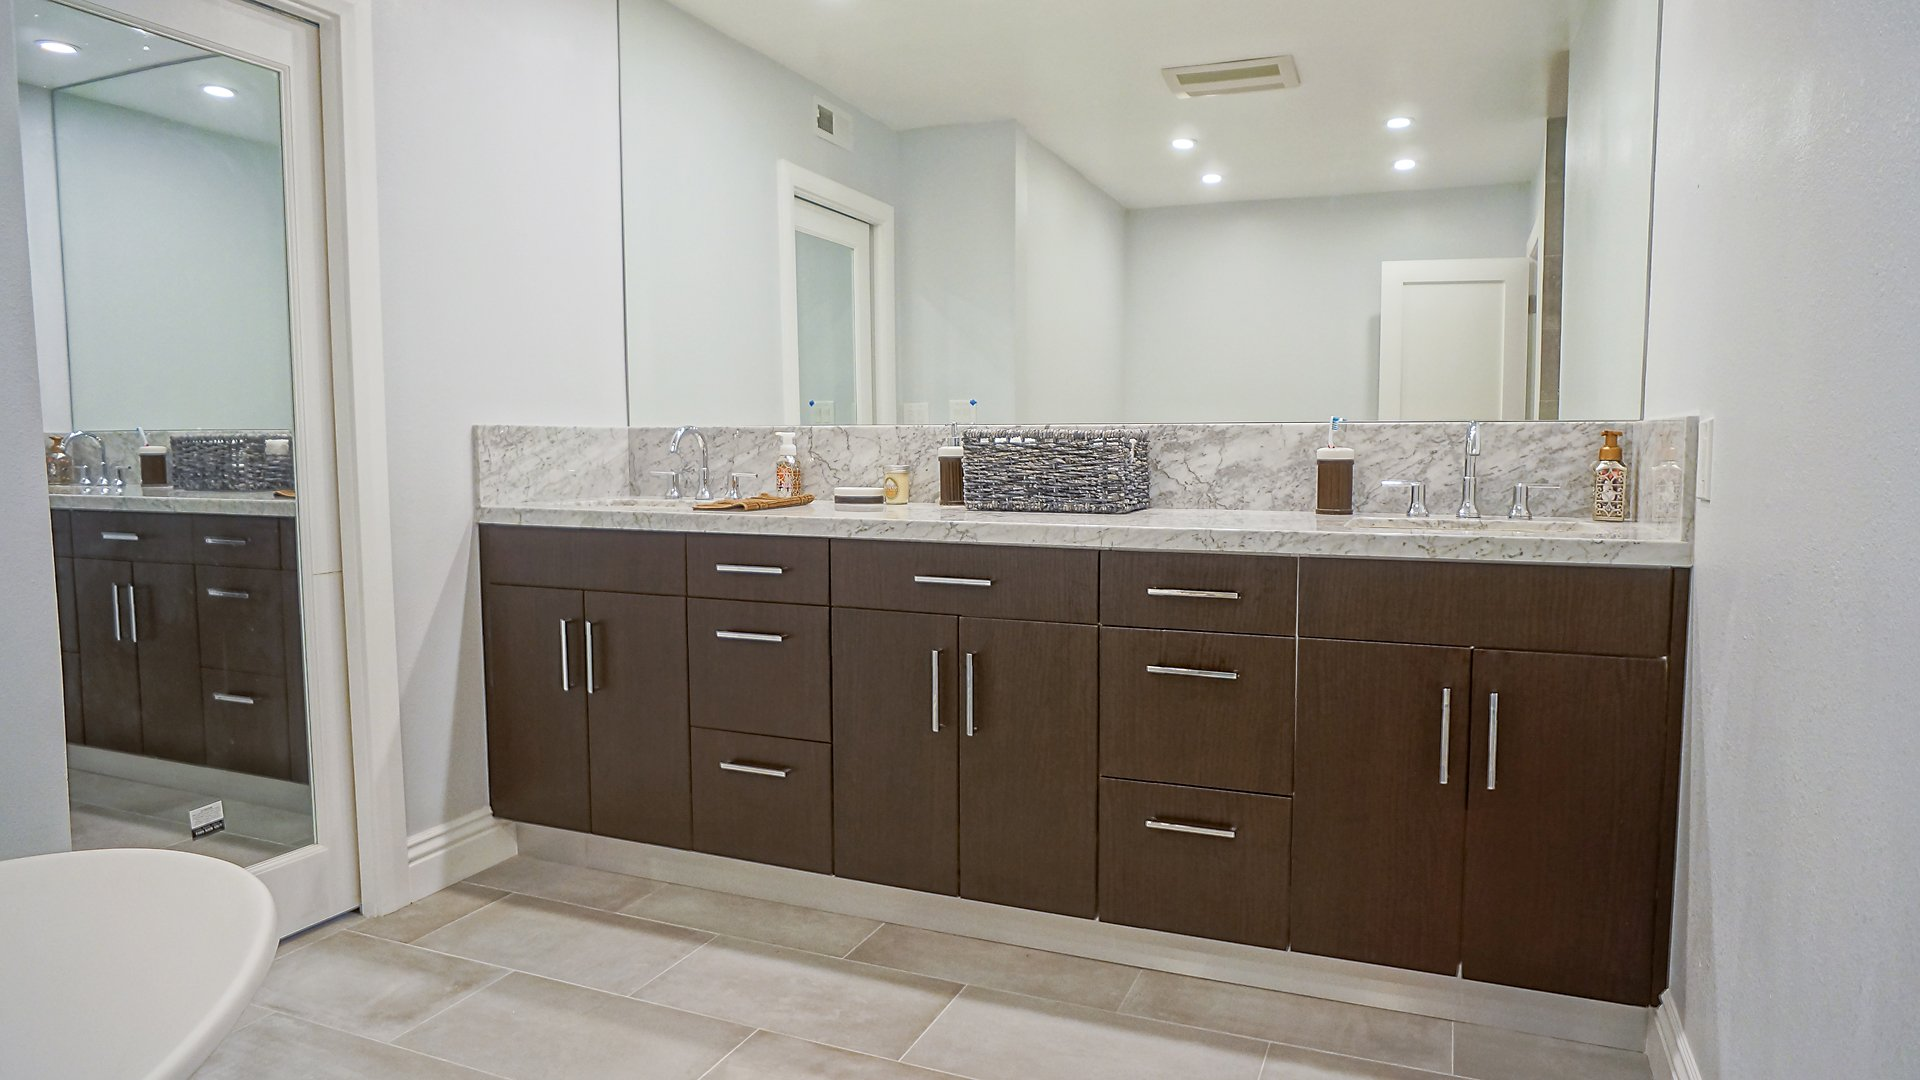 Bathroom Remodeling Los Angeles >> Bathroom Remodeling Los Angeles | BMI Group inc.